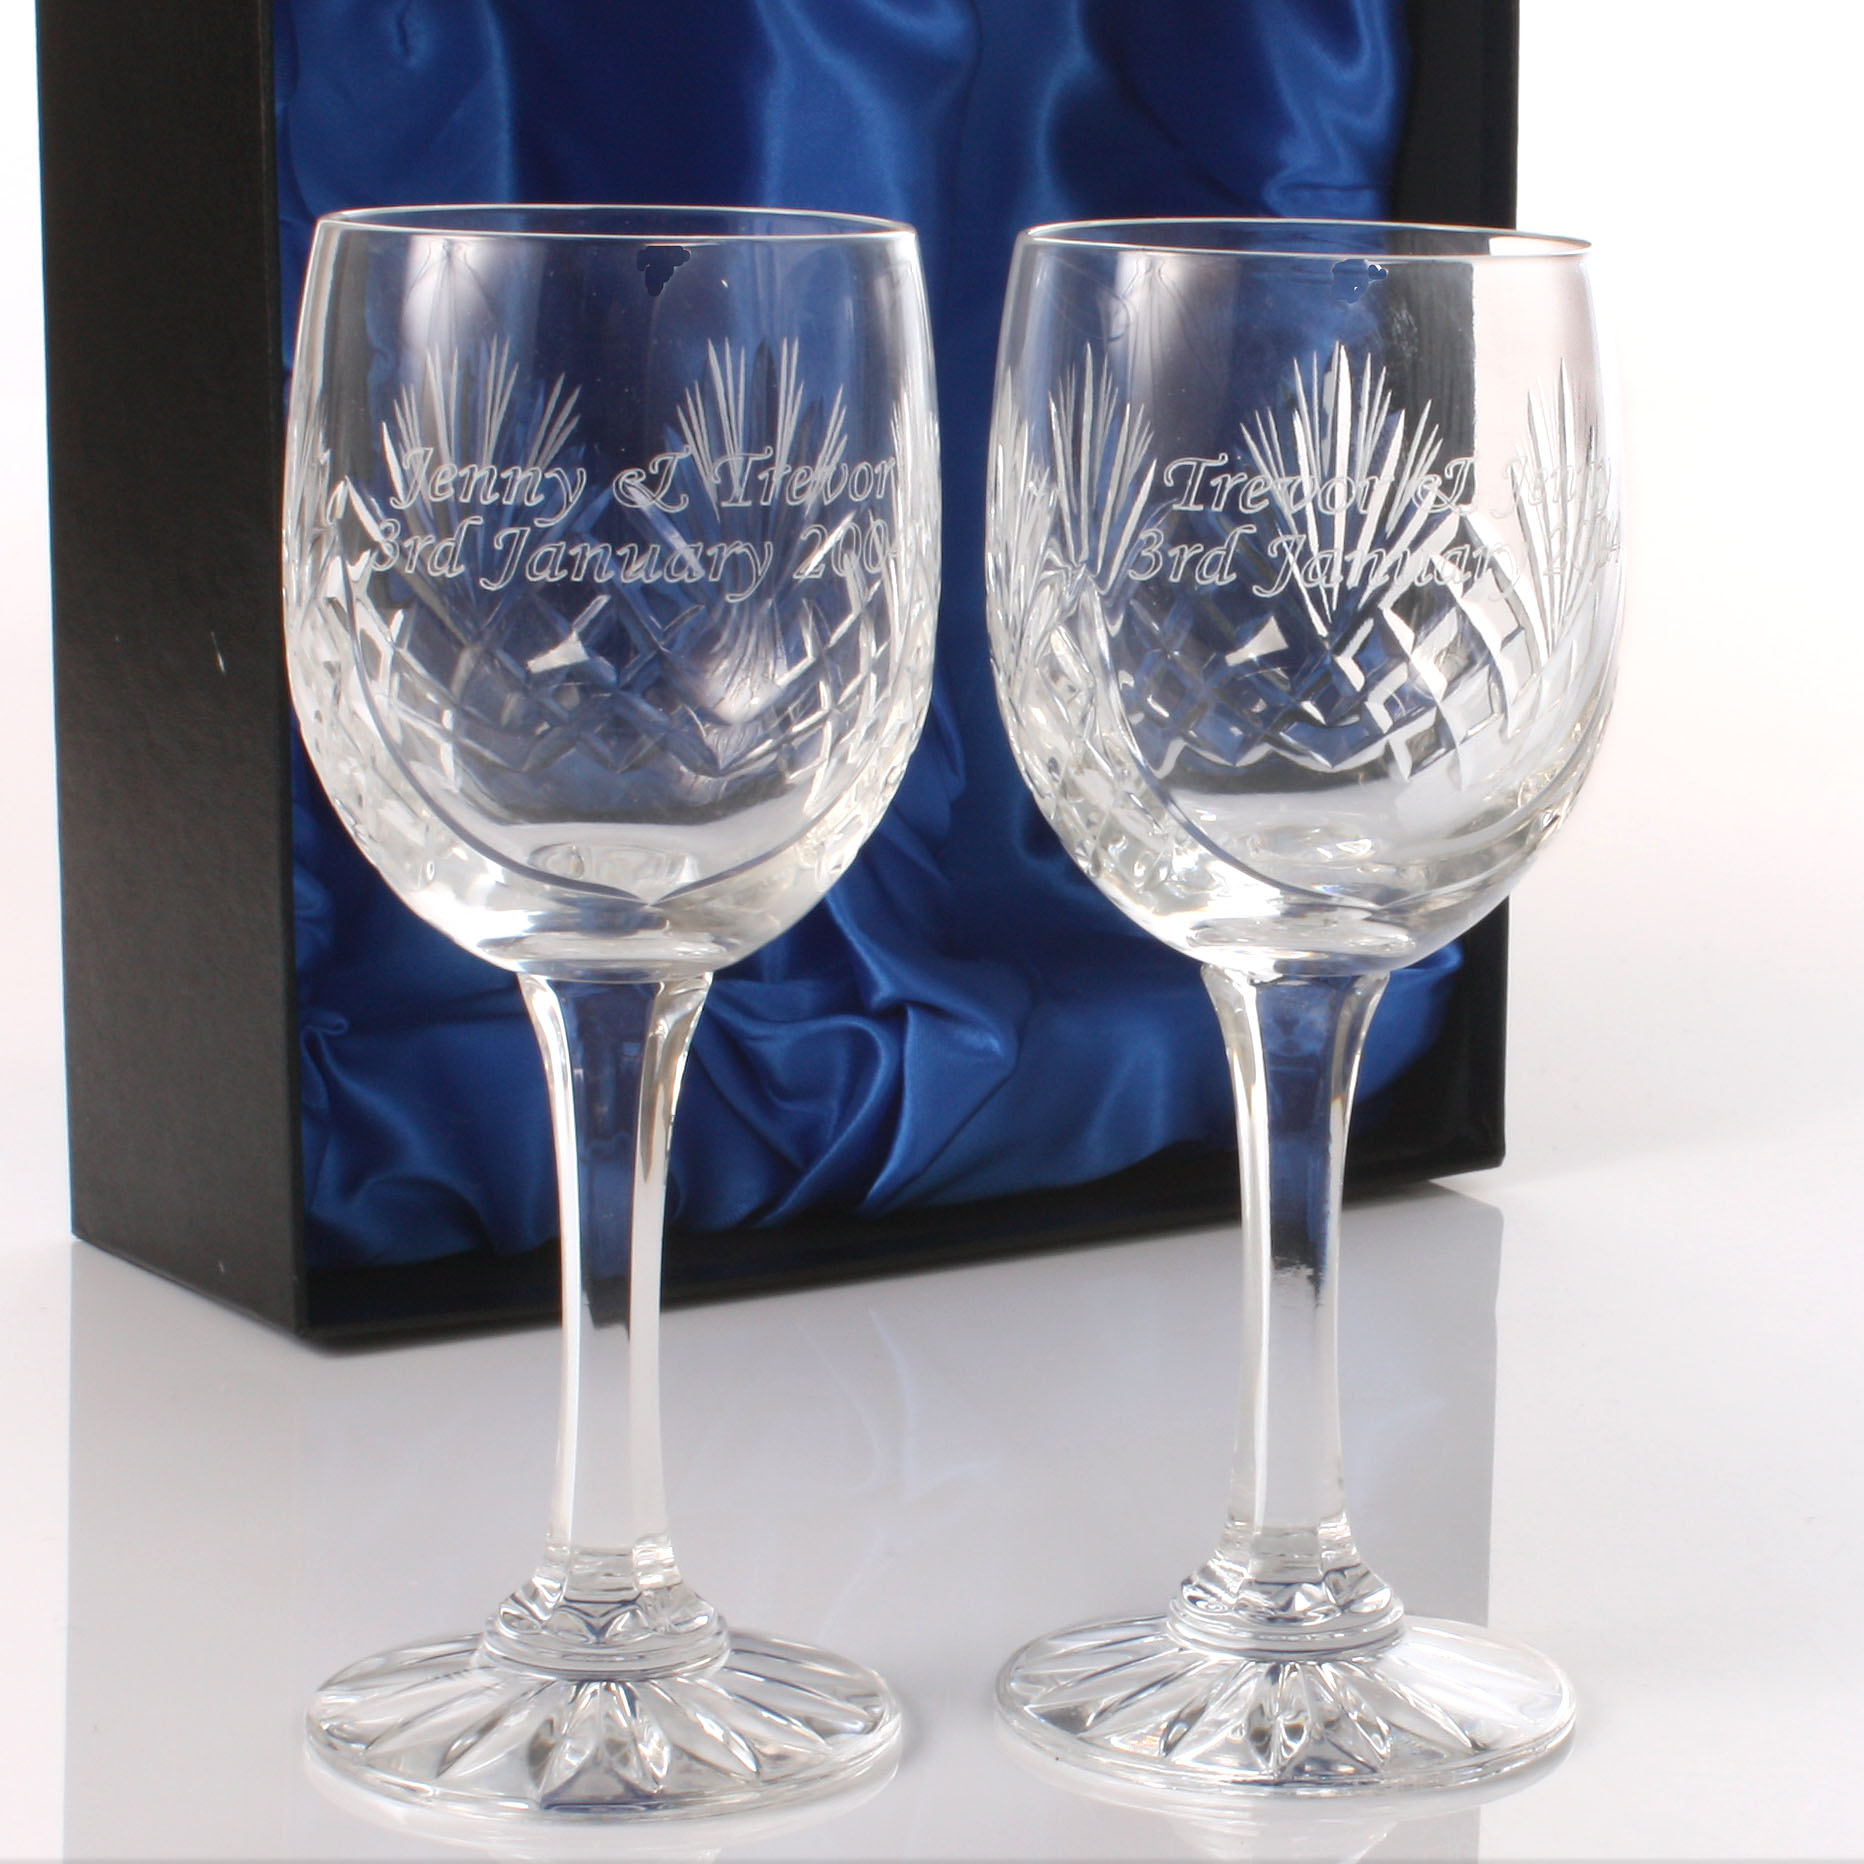 Valentines Day Gift - Engraved Cut Crystal Wine Glasses - Valentines Day Gifts